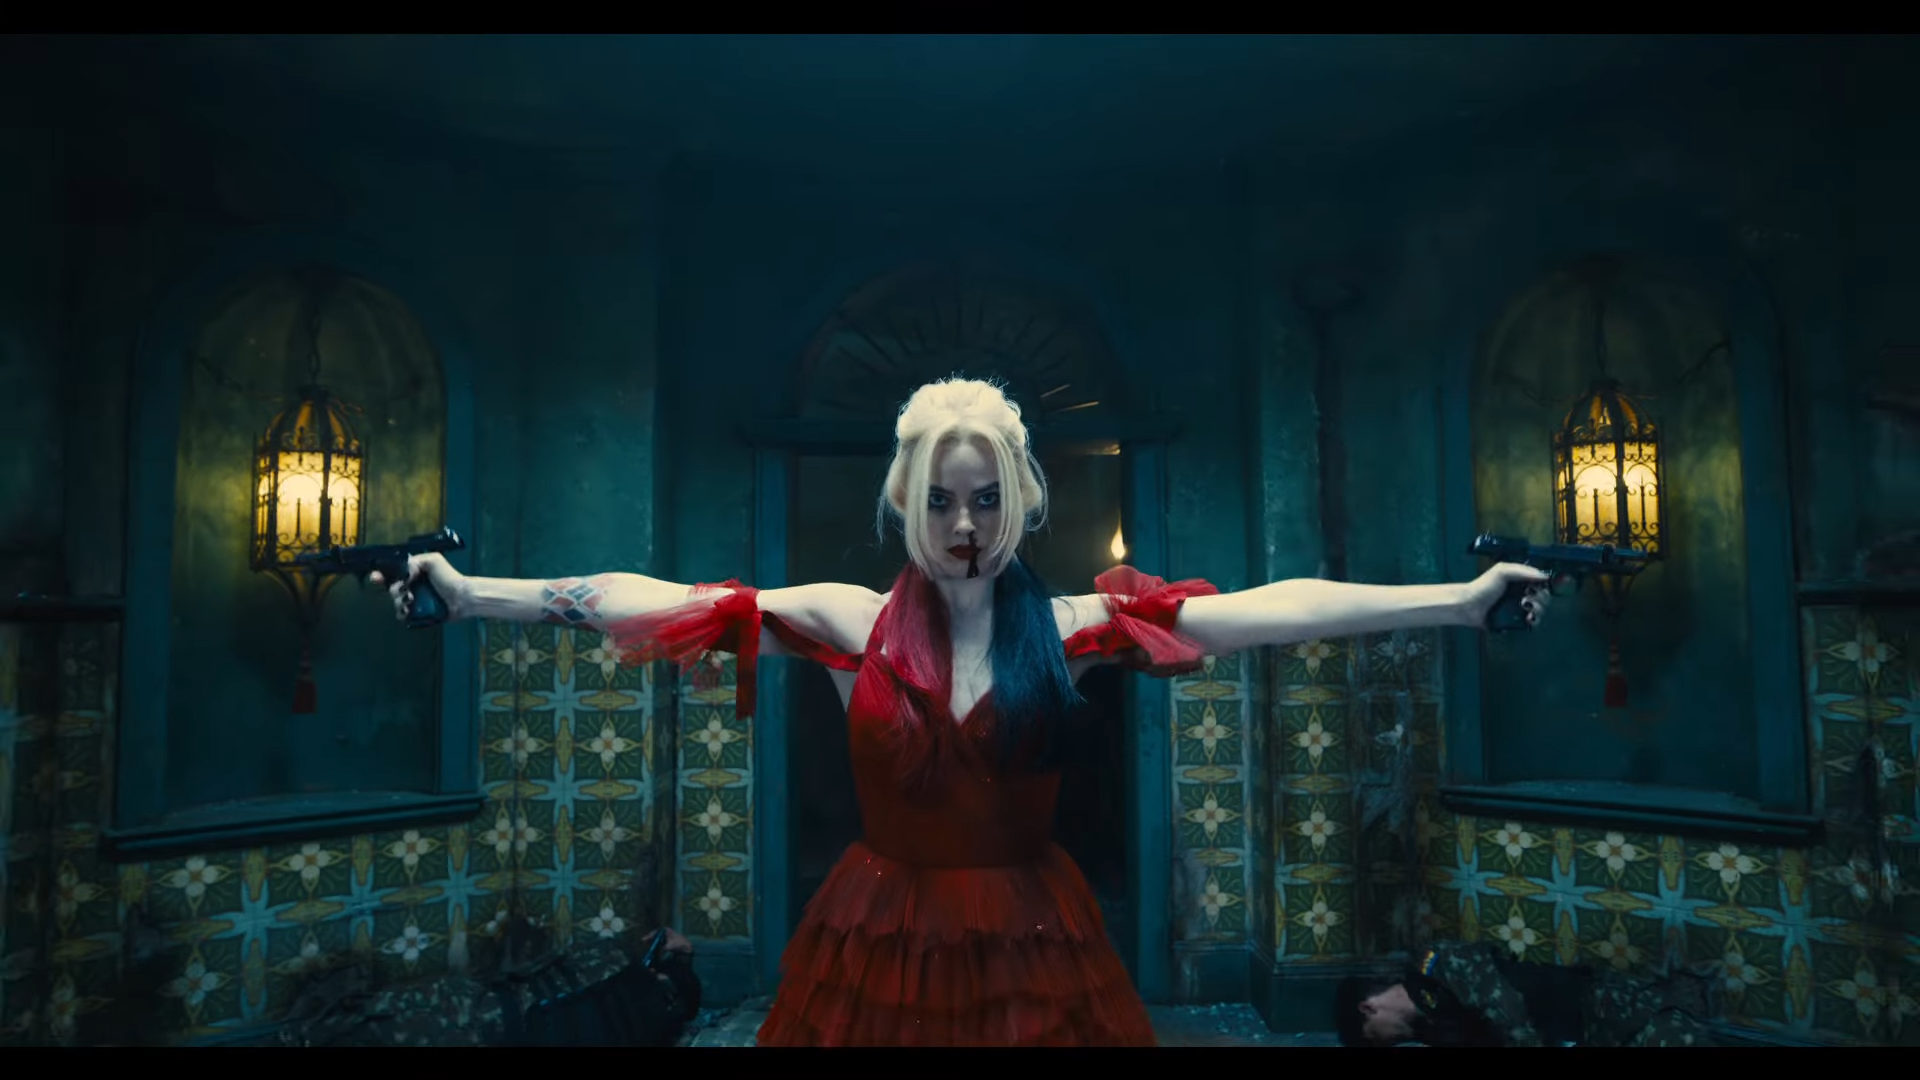 THE-SUICIDE-SQUAD-Rebellion-Trailer-1-5-screenshot-133